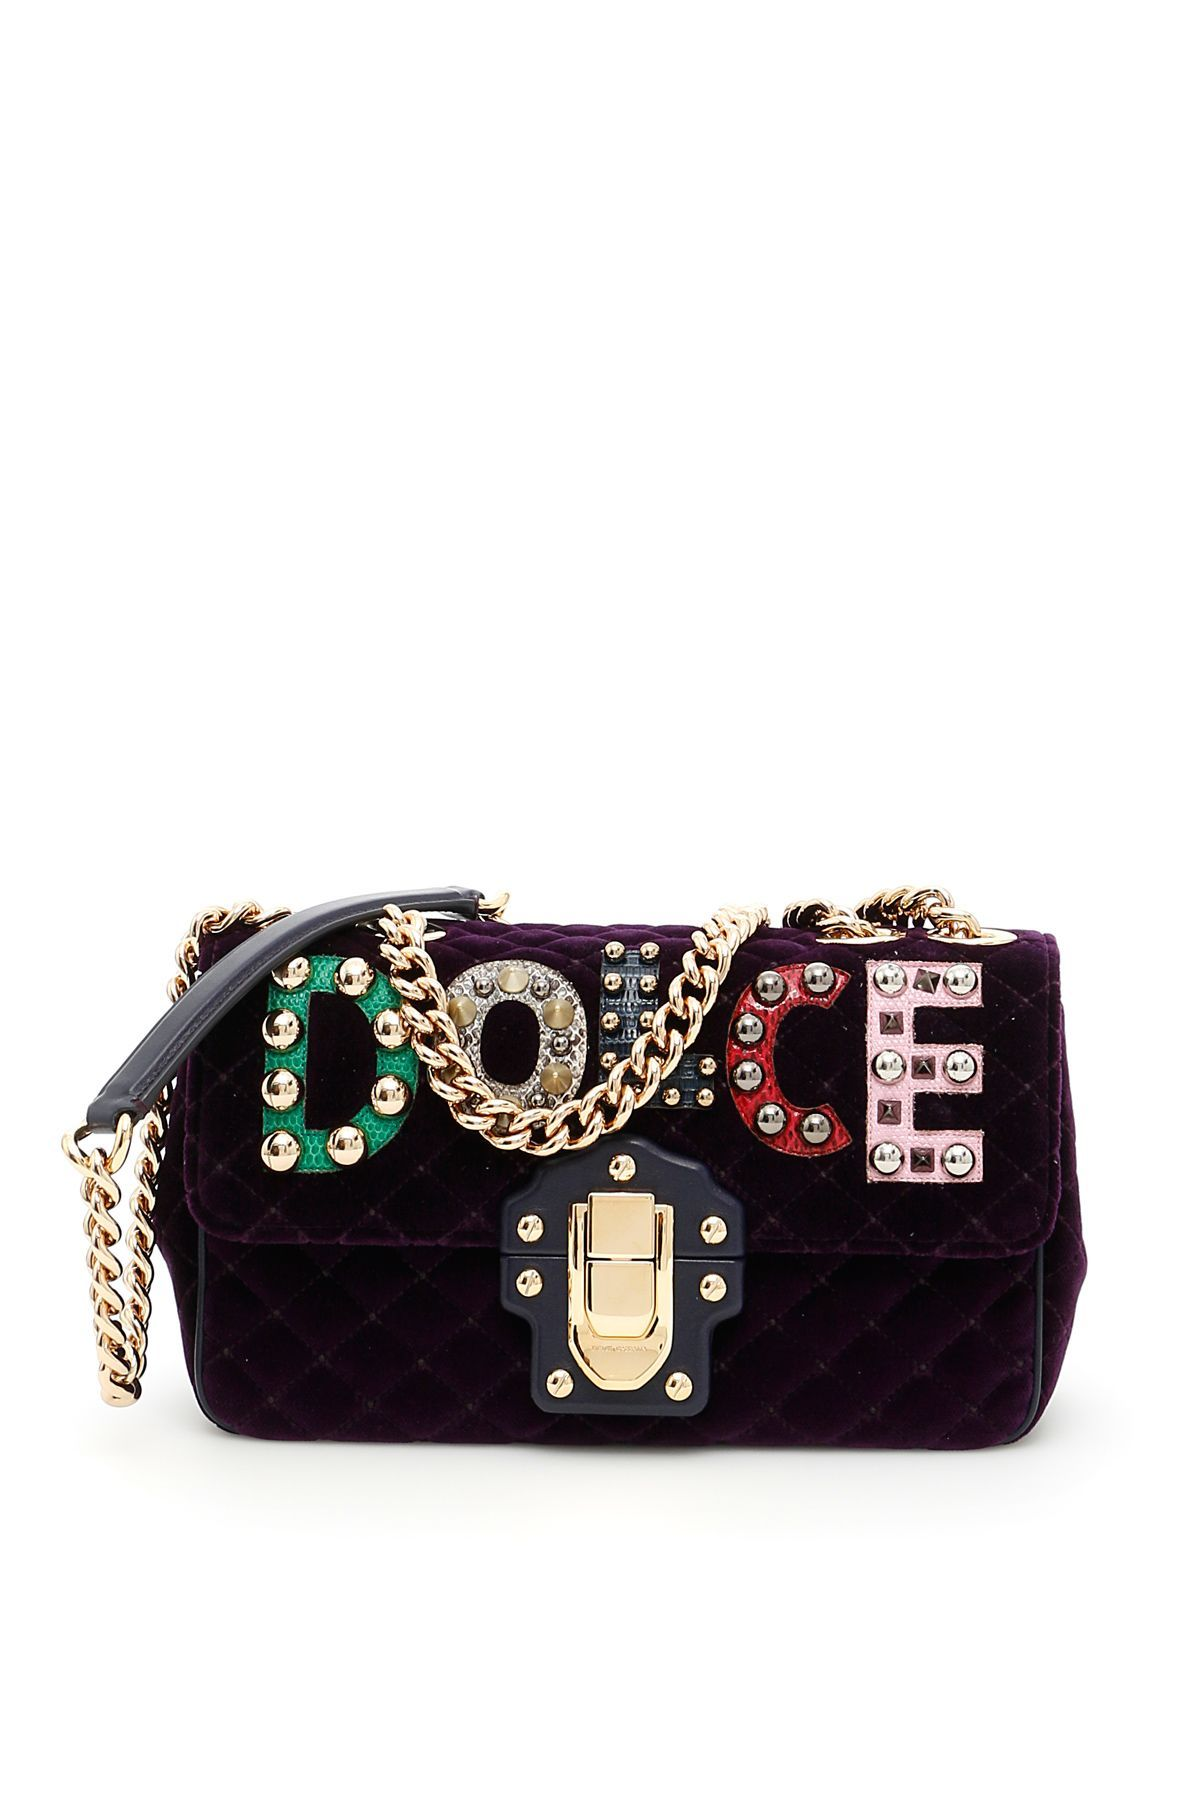 1c6c775aaa DOLCE   GABBANA LUCIA SHOULDER BAG.  dolcegabbana  bags  shoulder bags   leather  lining  velvet  metallic